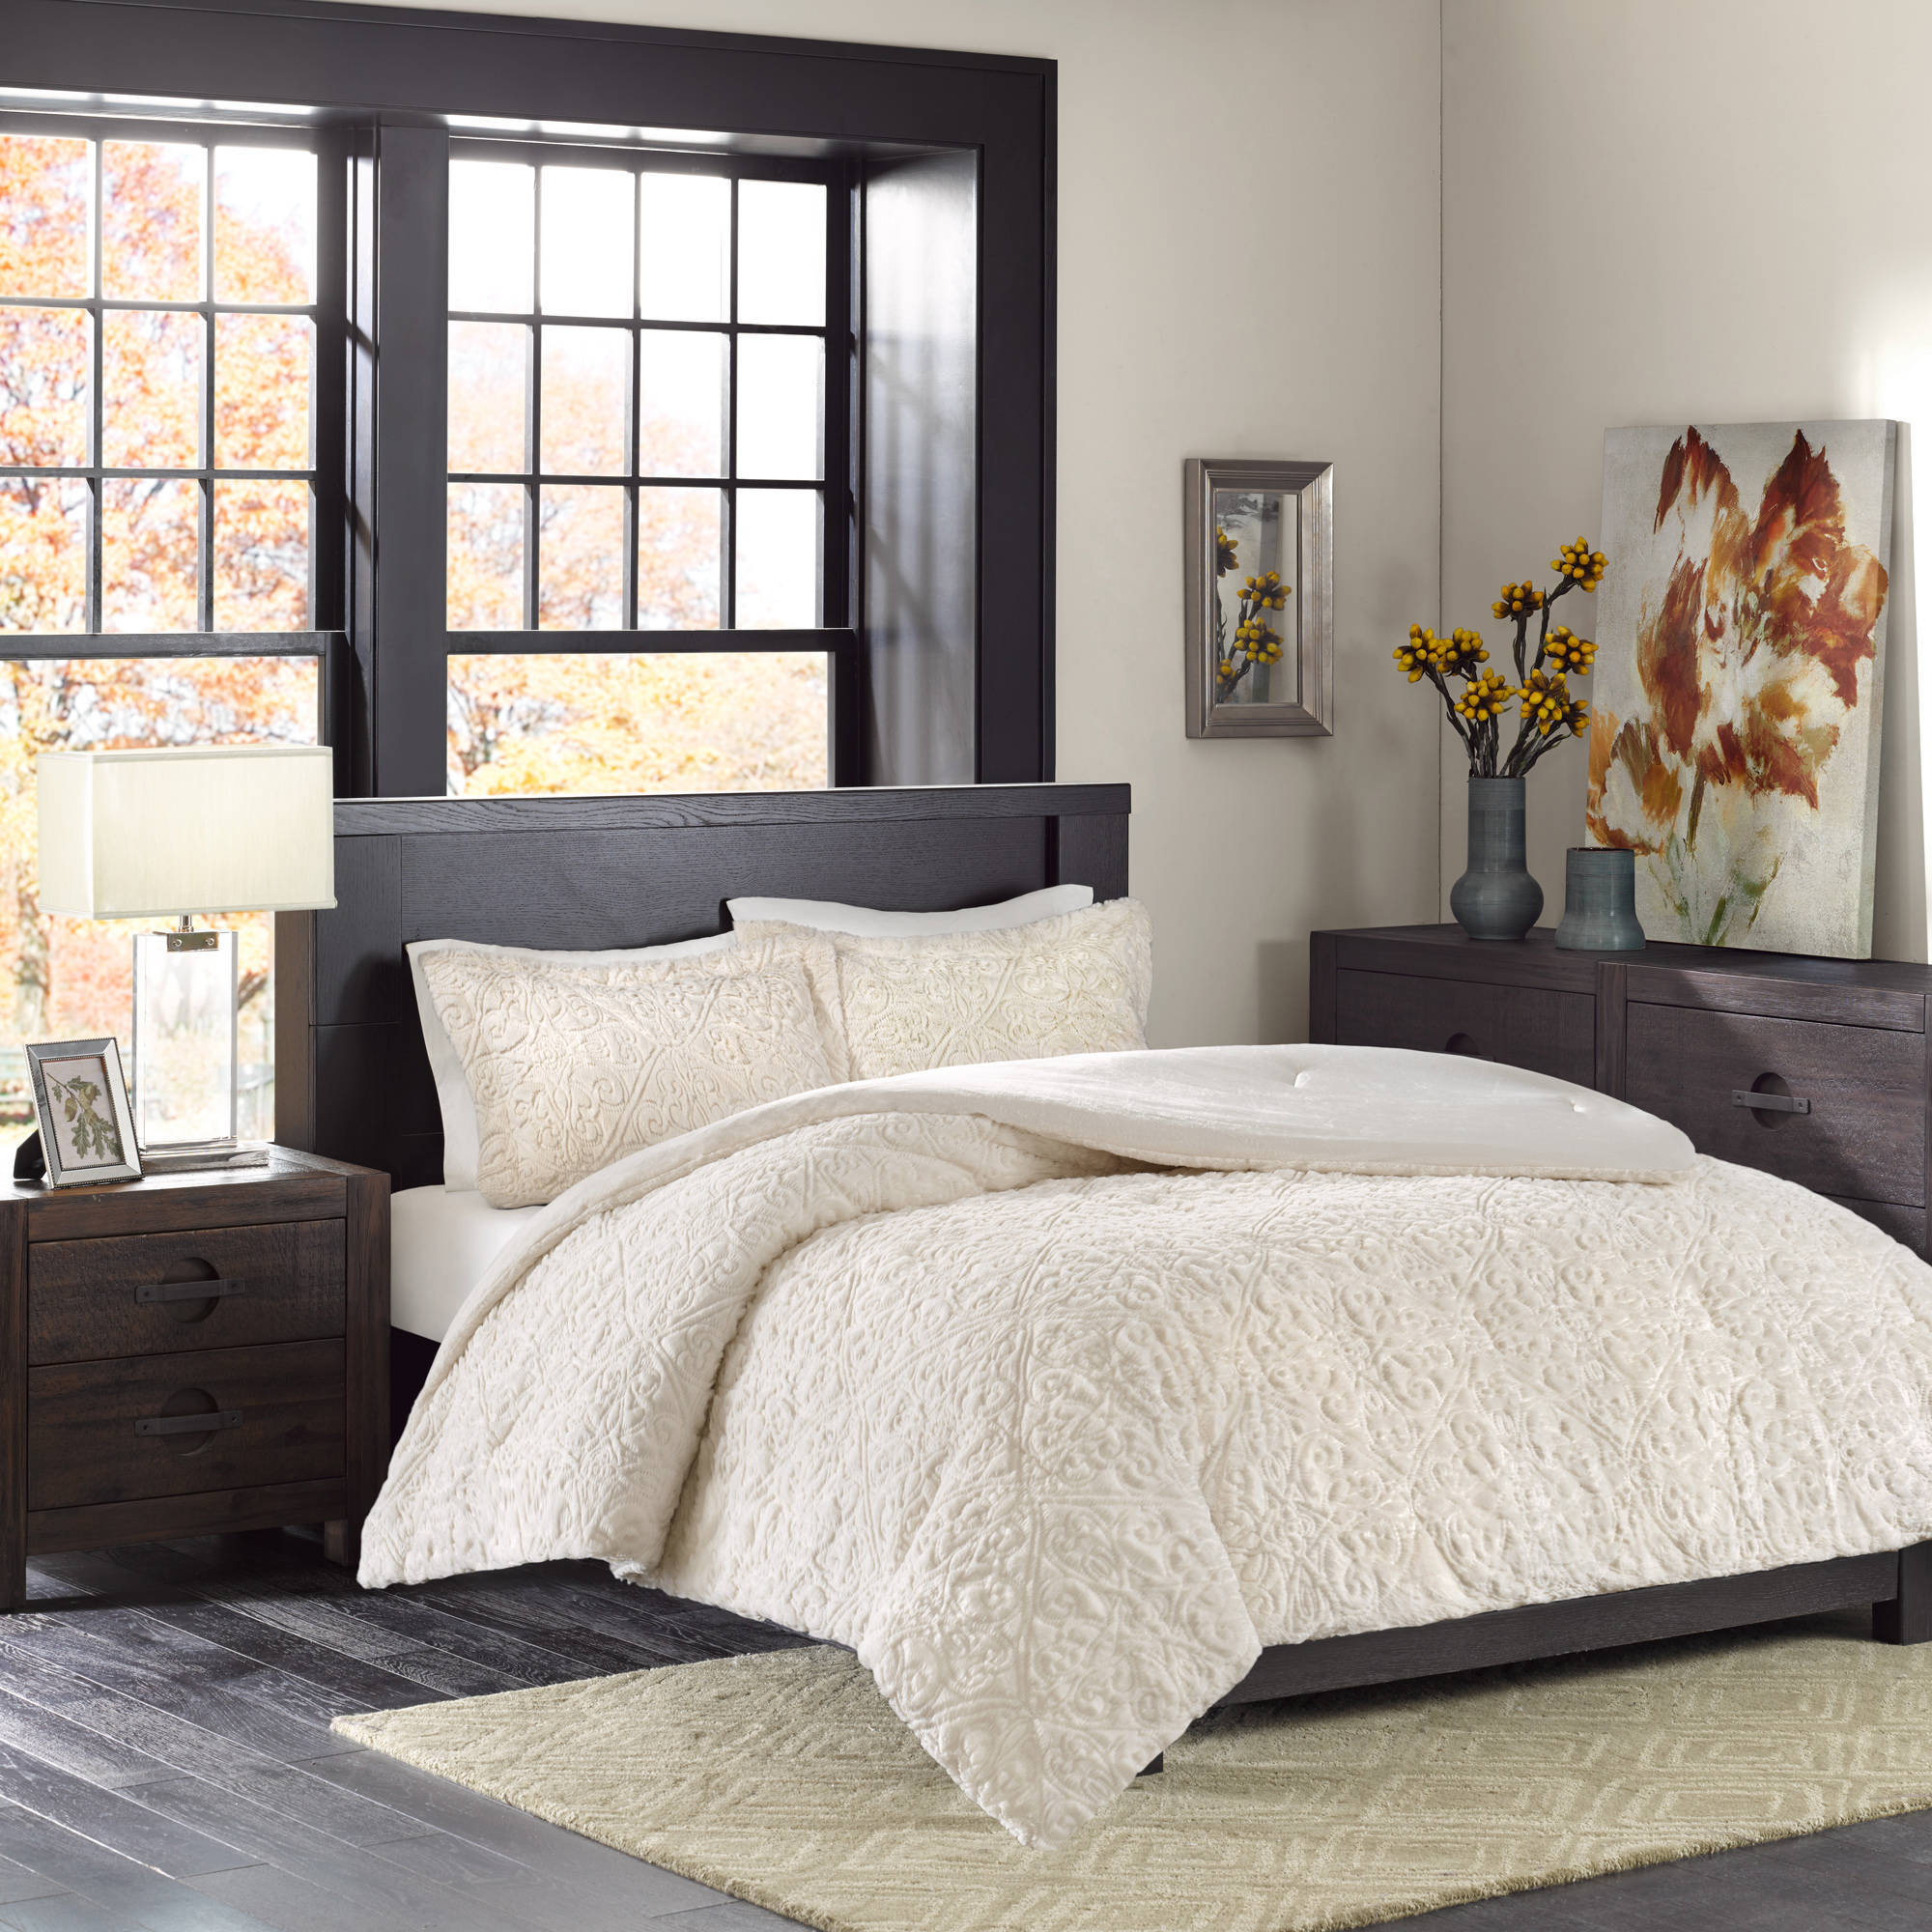 discontinued caribbean joe micro mink down alternative discontinued caribbean joe micro mink down alternative reversible comforter set walmart com